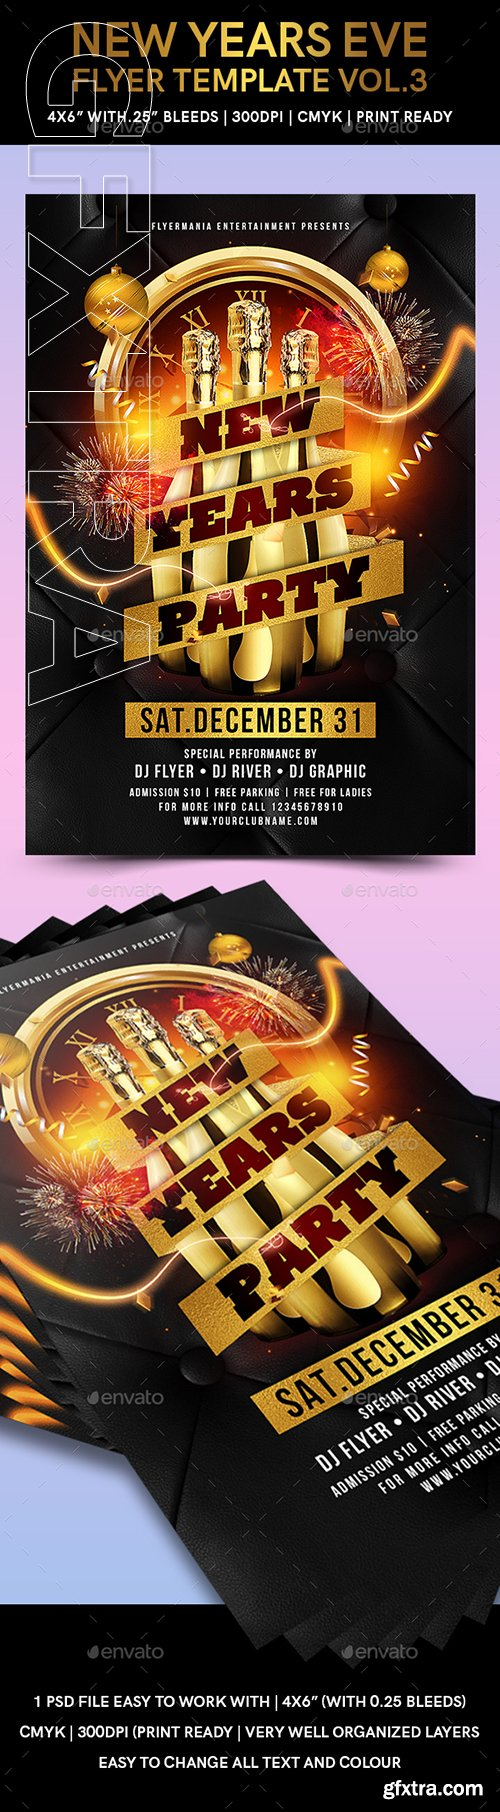 GraphicRiver - New Years Eve Flyer Template Vol 3 22817997